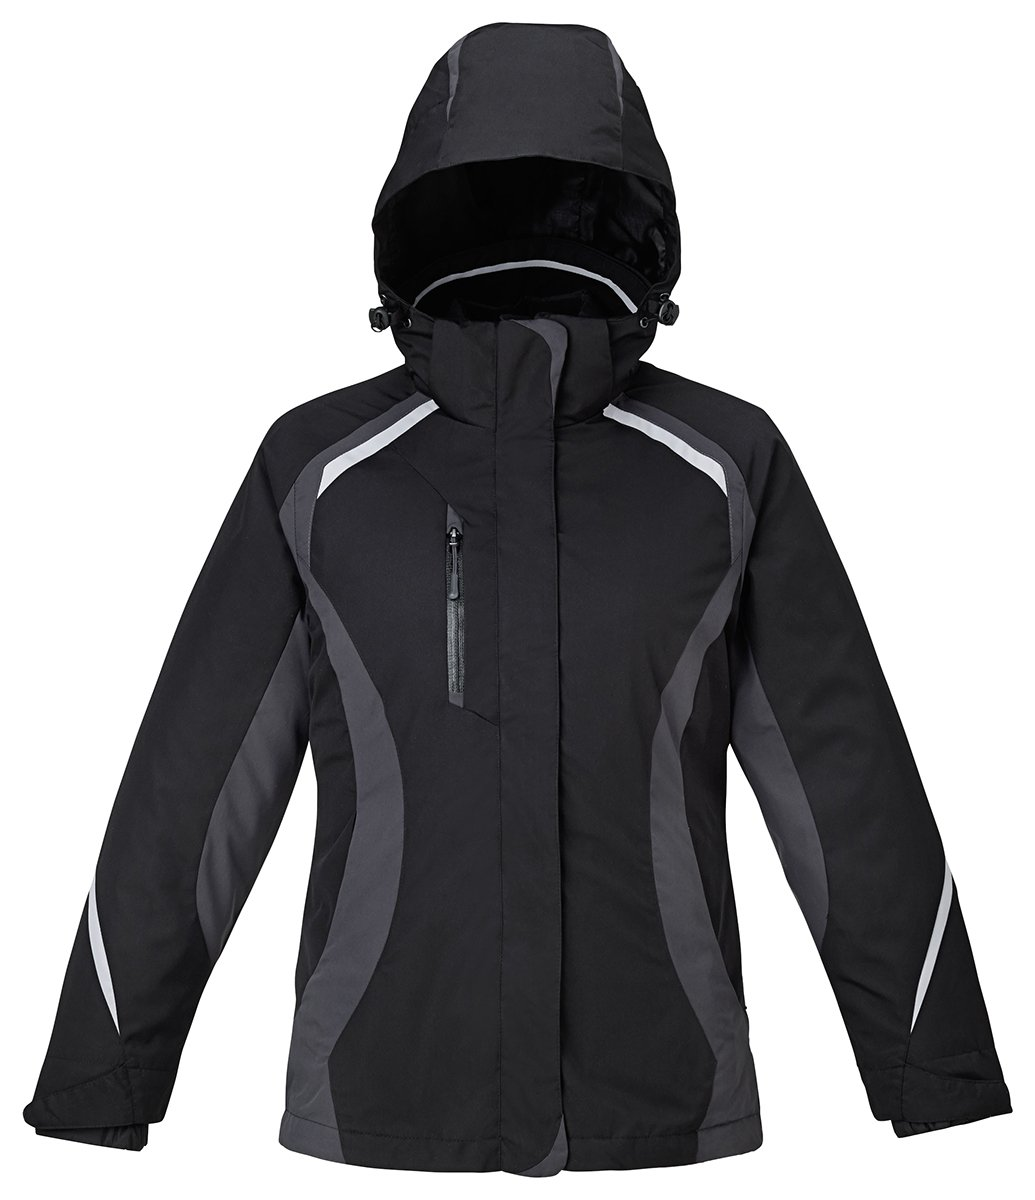 North End Height Ladies 3-In-1 Insulated Liner Jacket, Black, X-Large by Ash City - North End